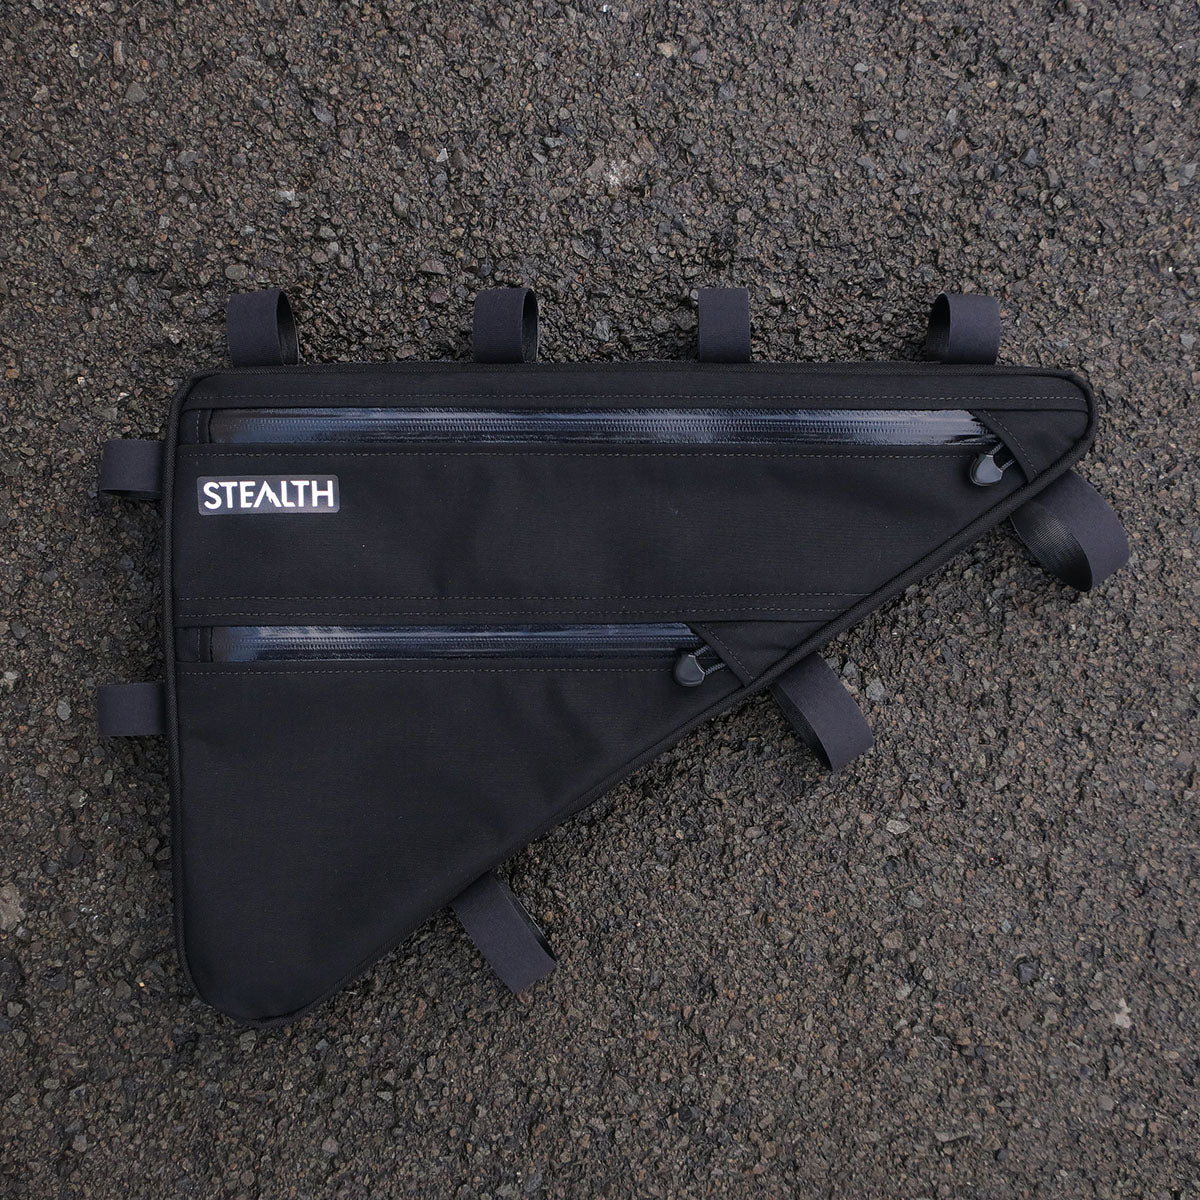 Black frame bag for riding the TA